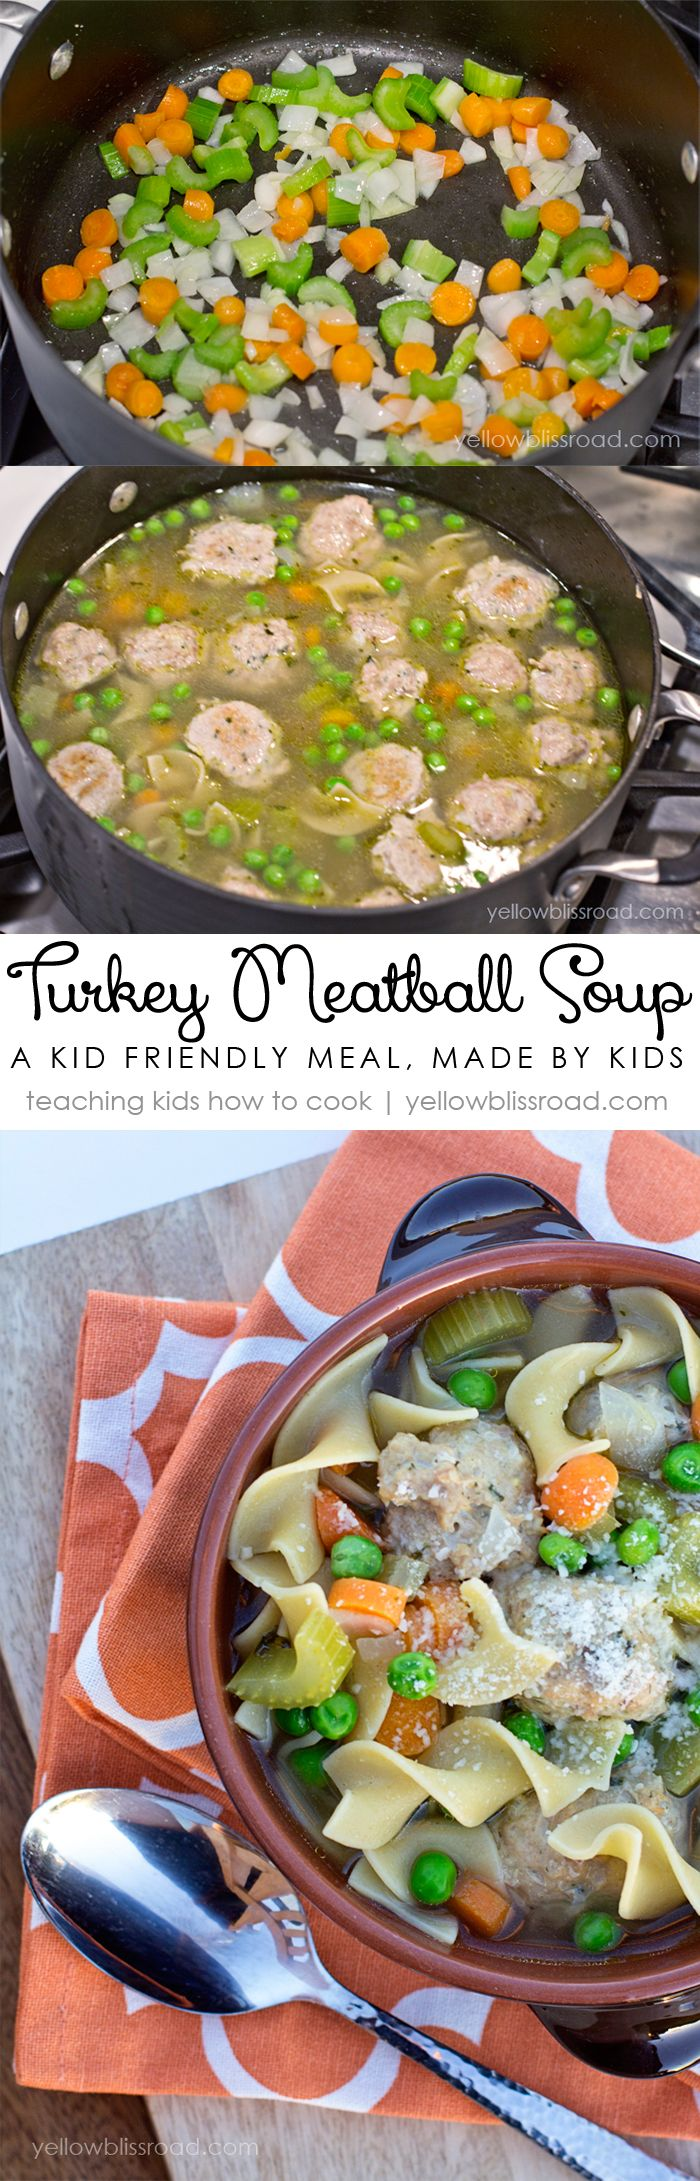 Turkey Meatball Soup - A Perfect, Kid Friendly, Fall Meal | Healthy Eating